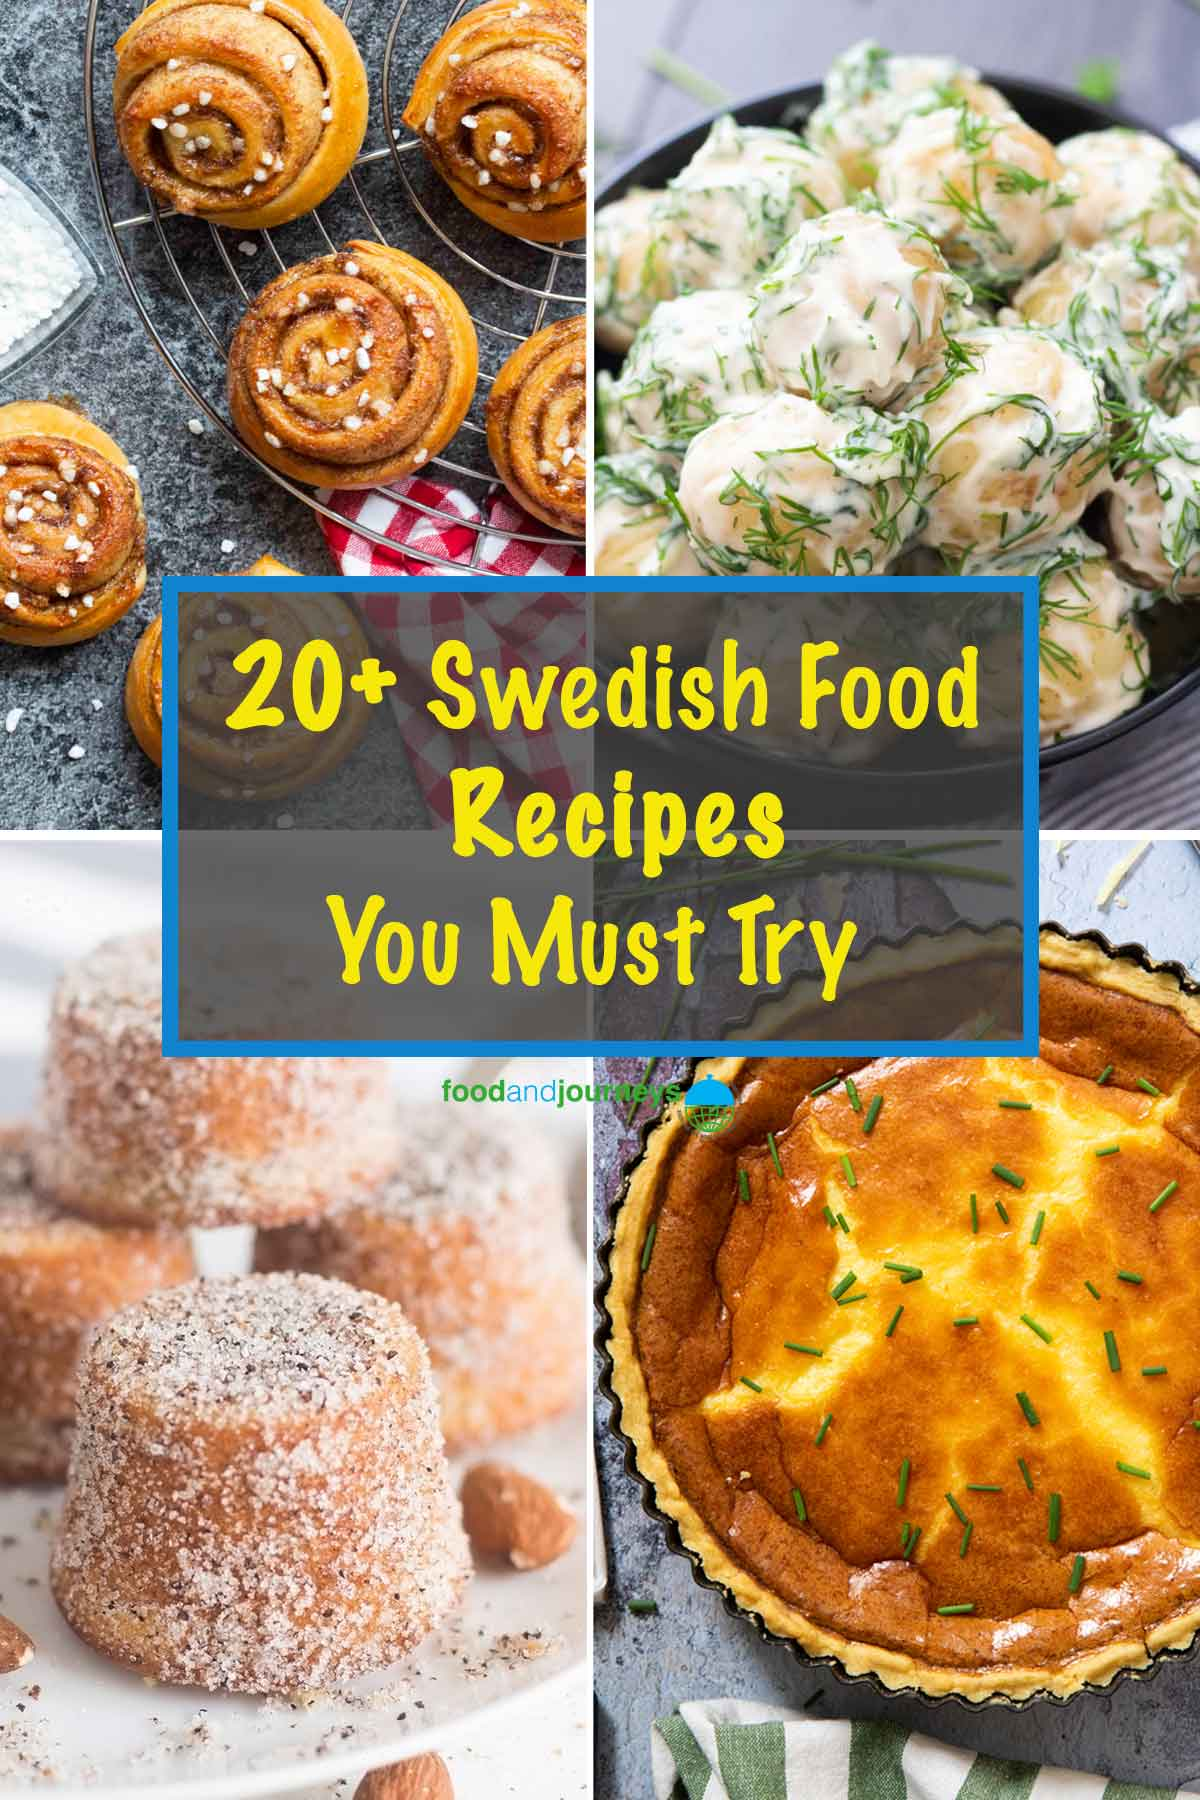 A collage of images showing various Swedish dishes.